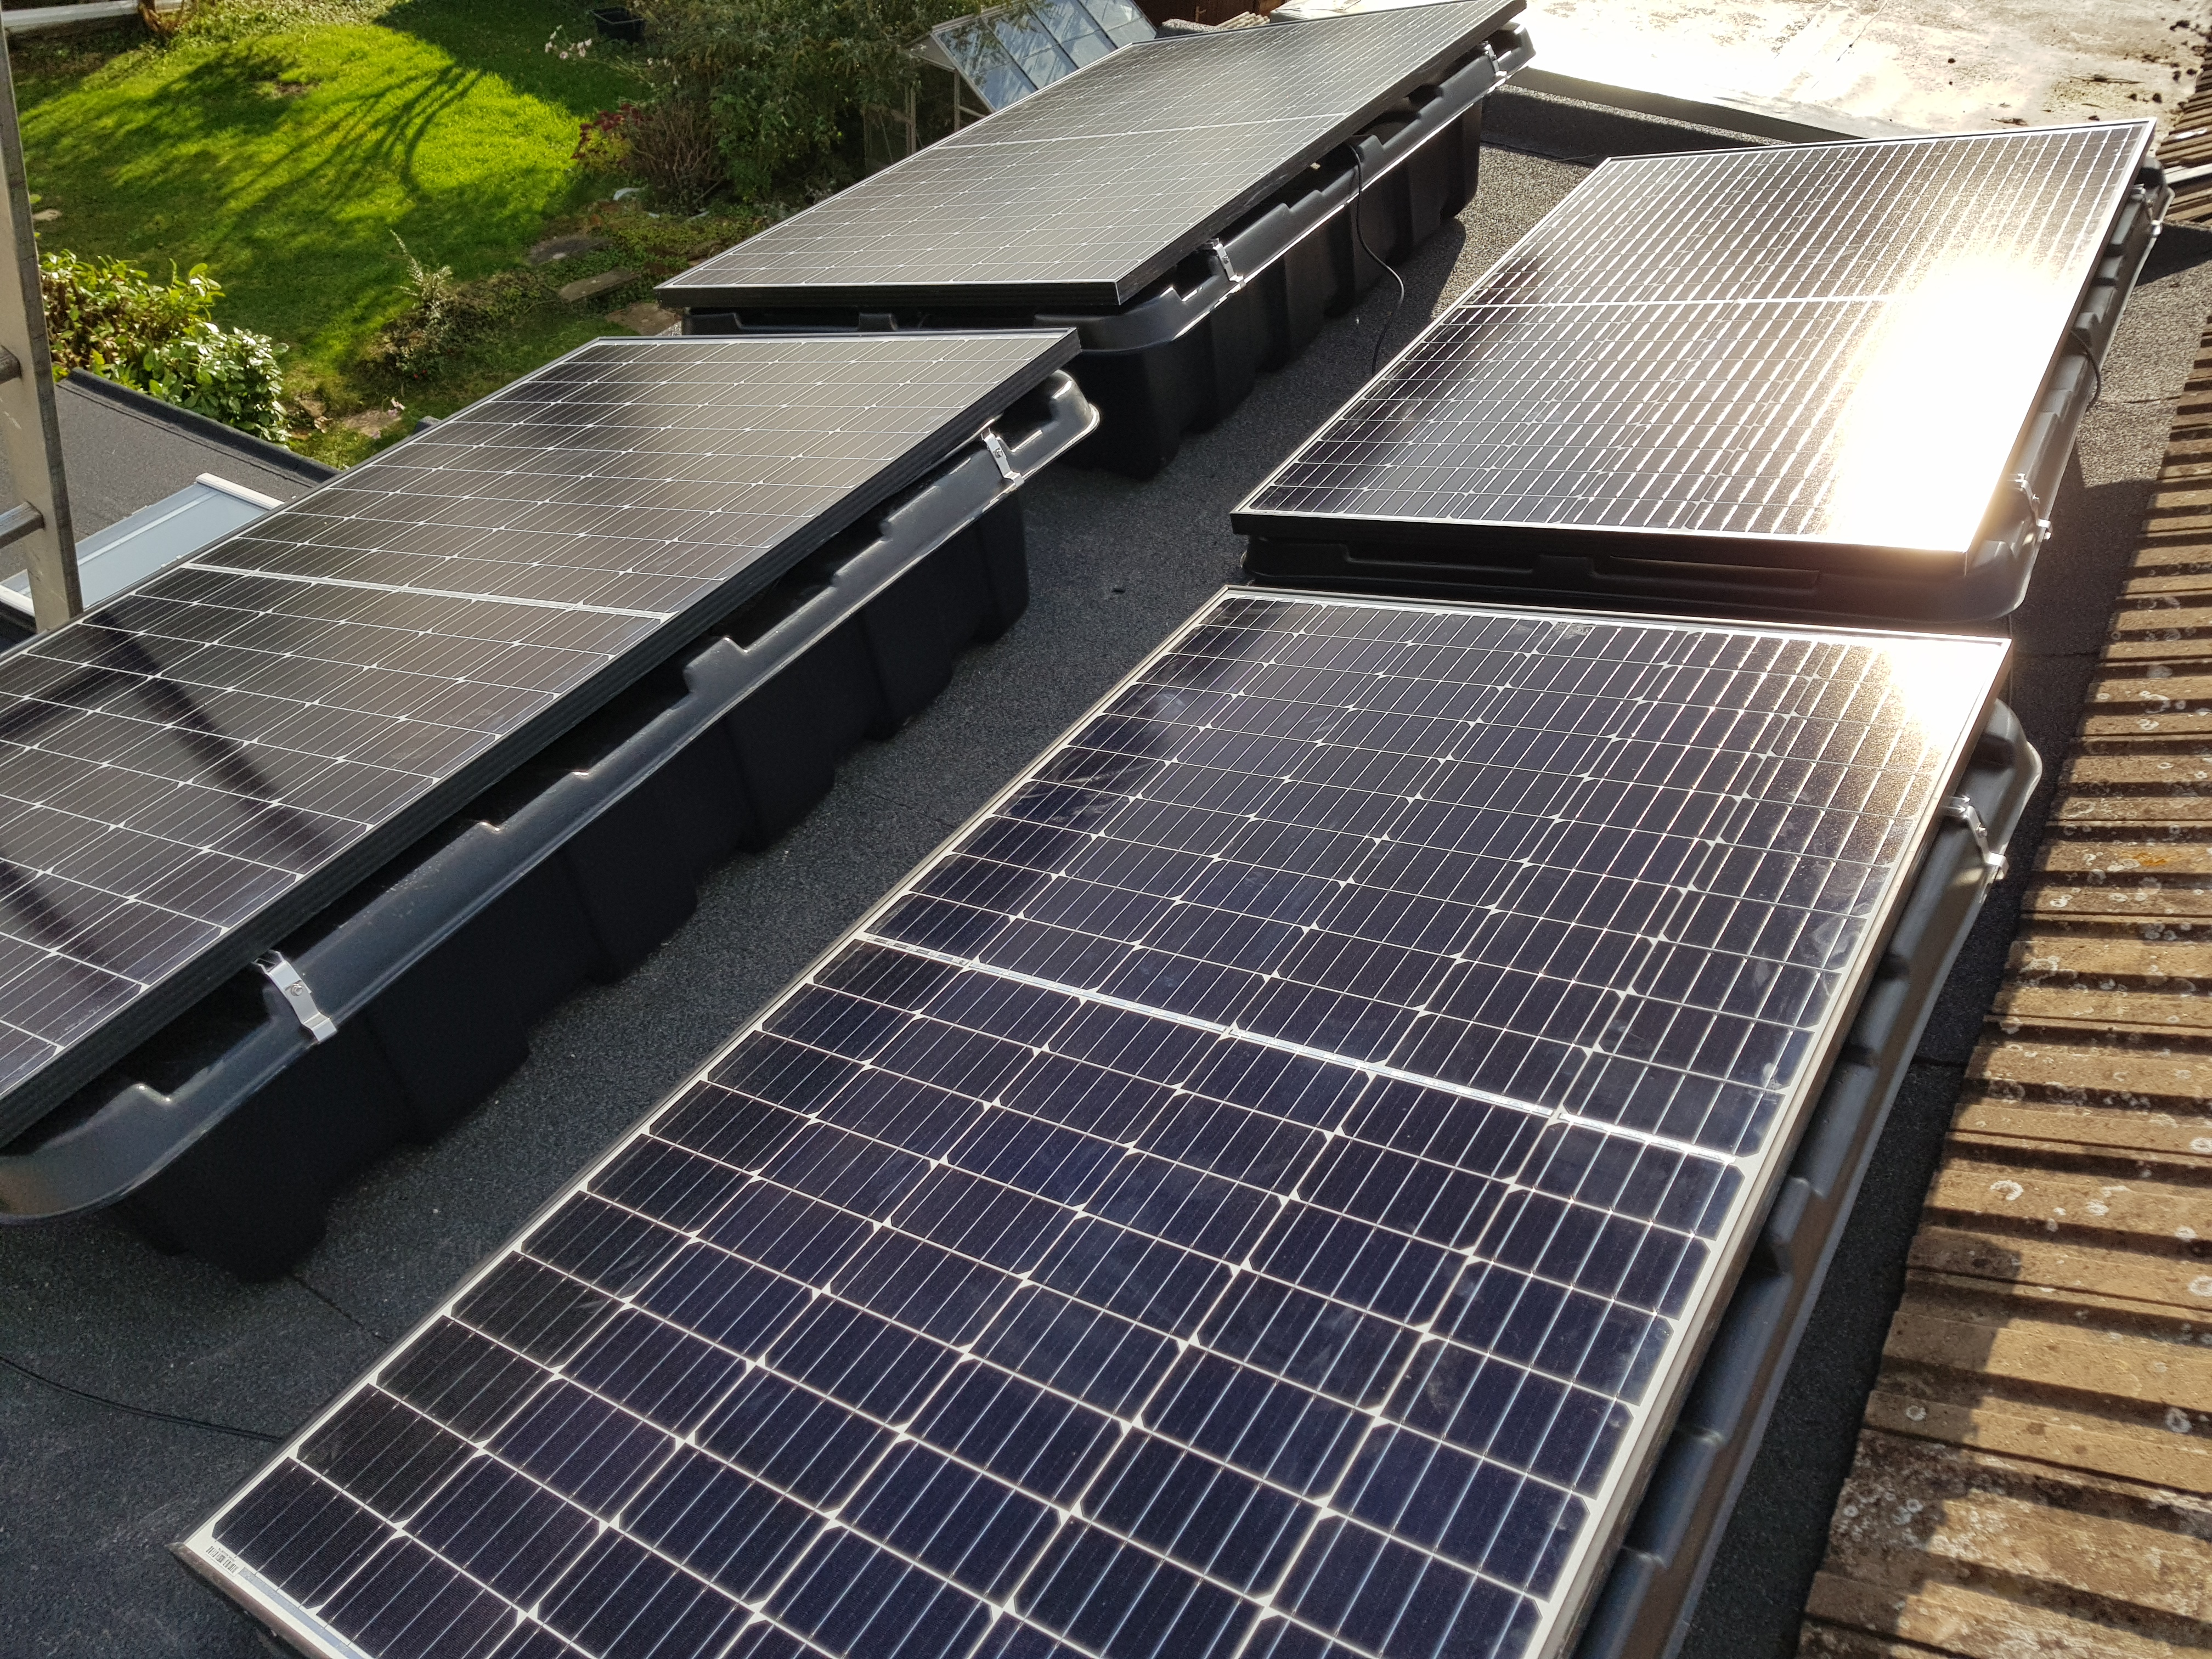 Essential Things to Know About Solar Panels in Real Estate